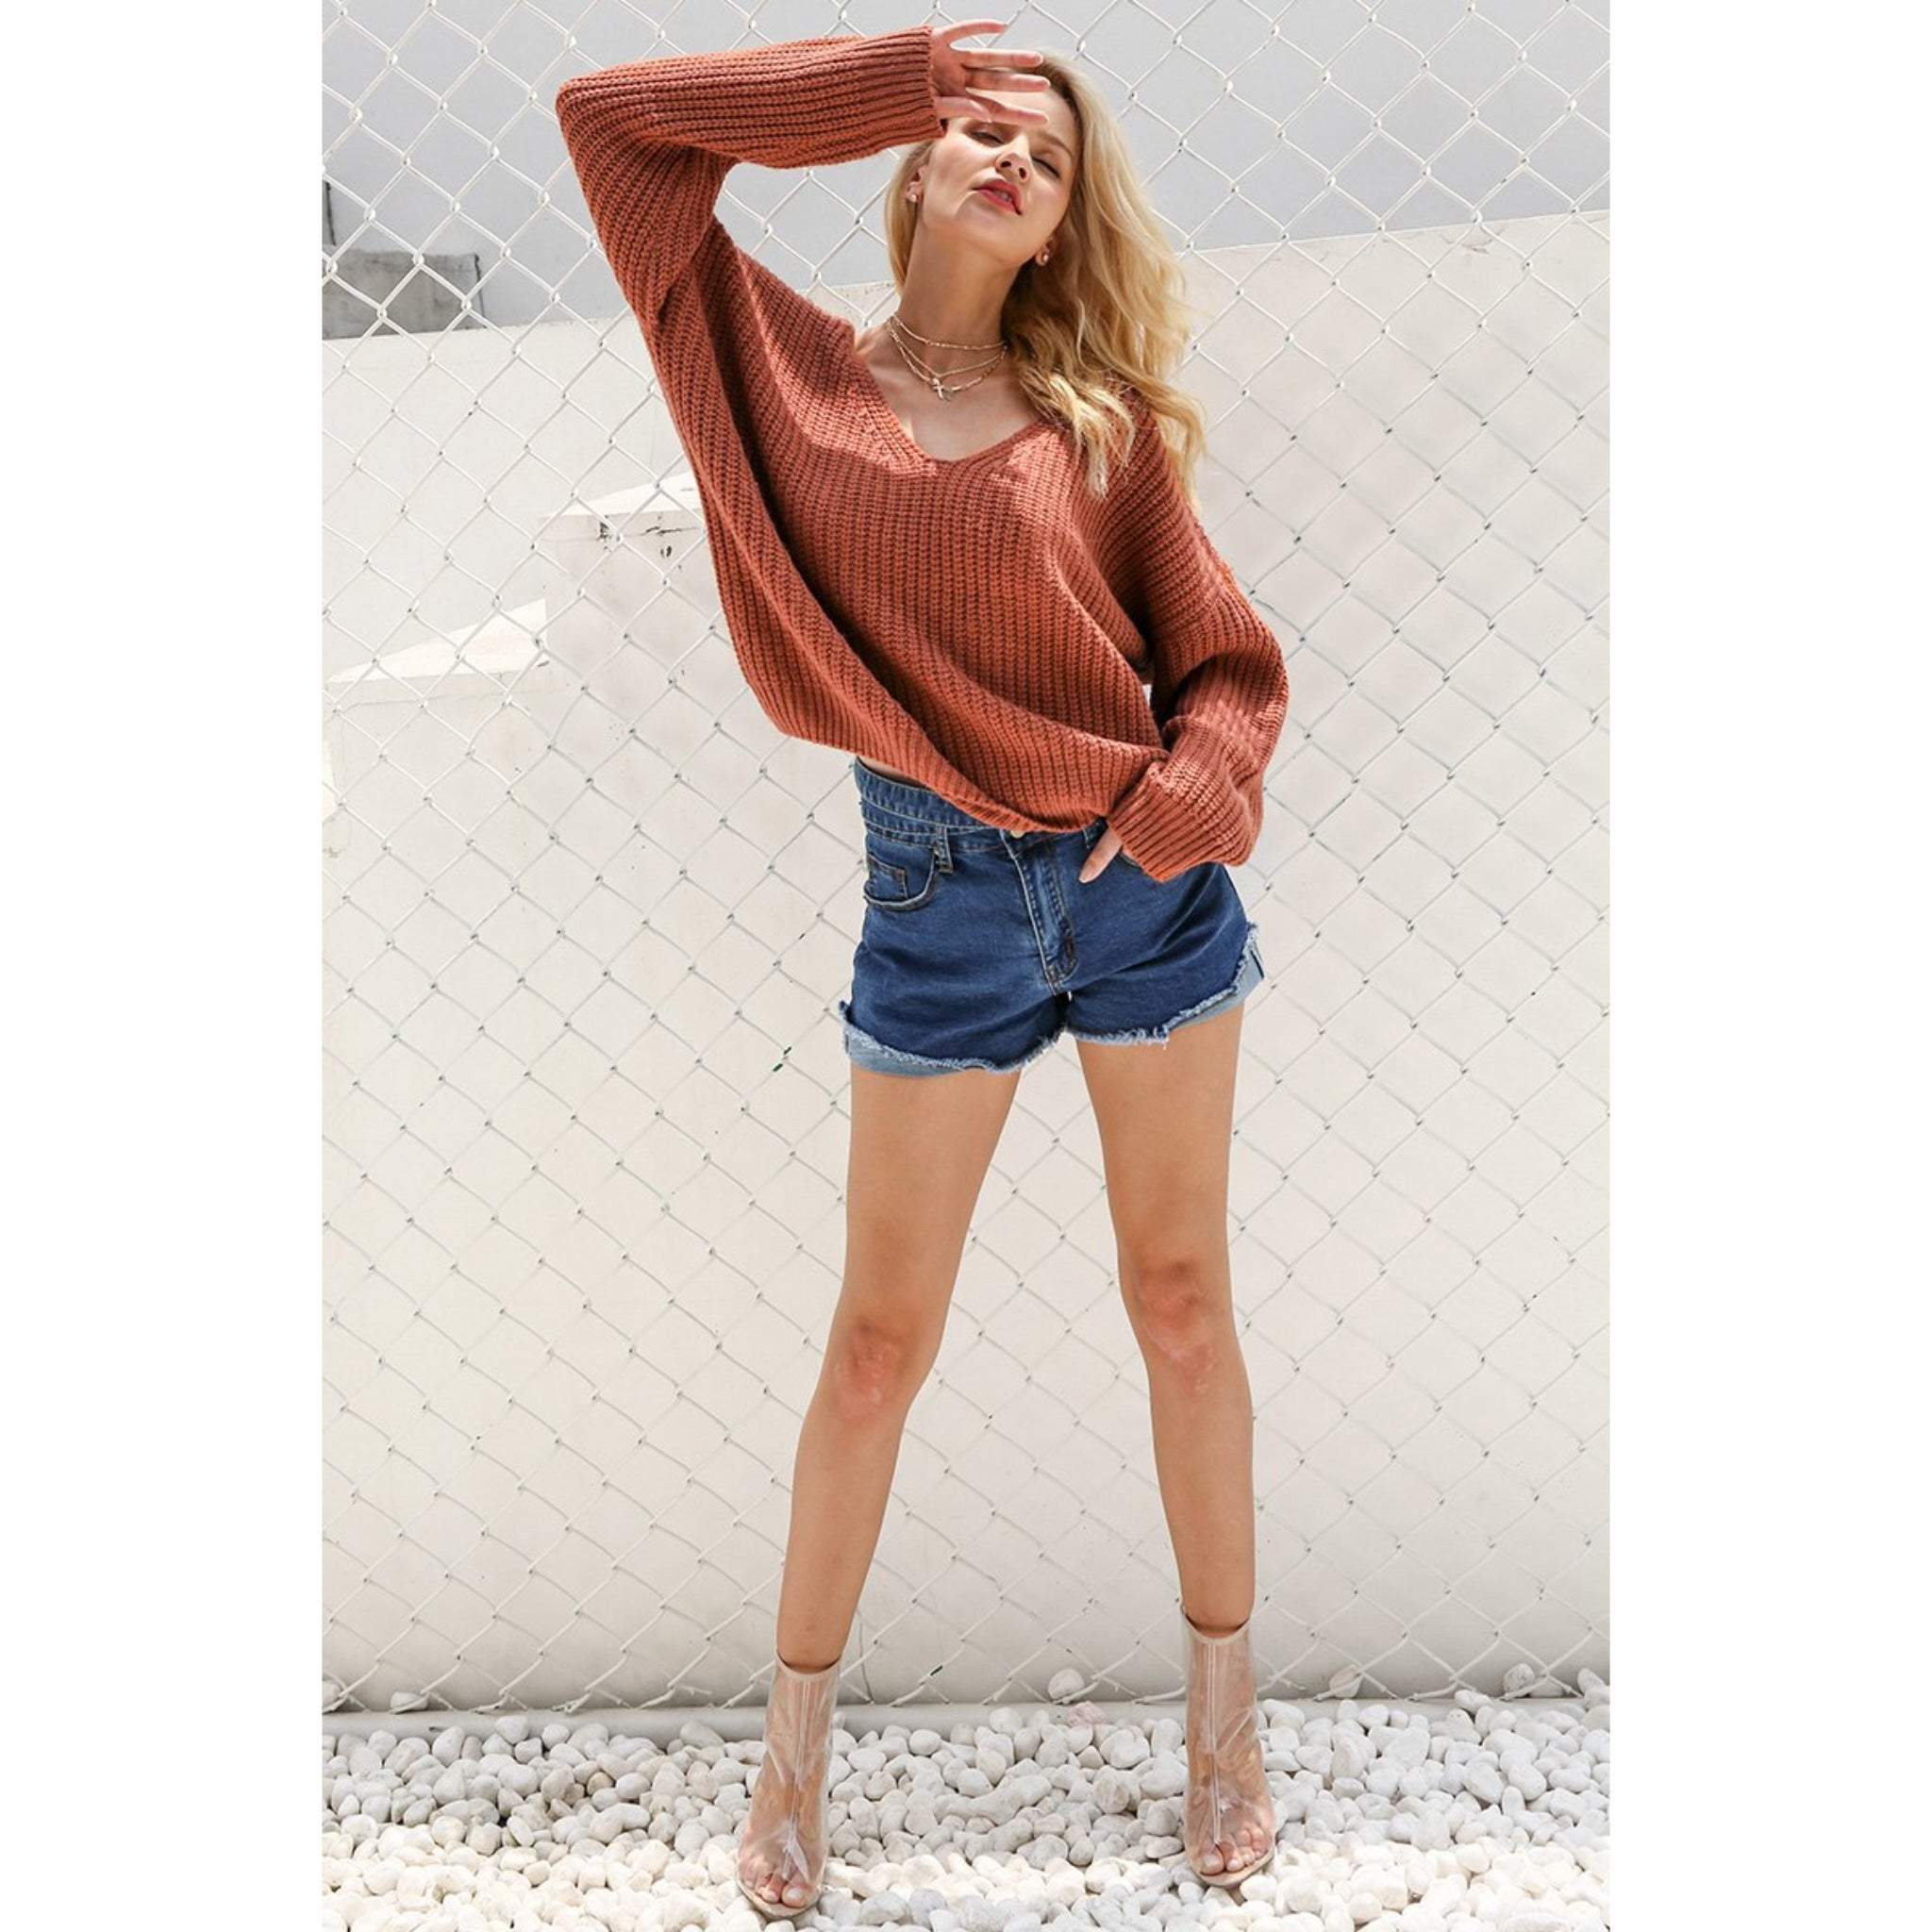 Women's High Low Sweater Lace Up Back Sweatshirt with Long sleeves and v-neck with open back